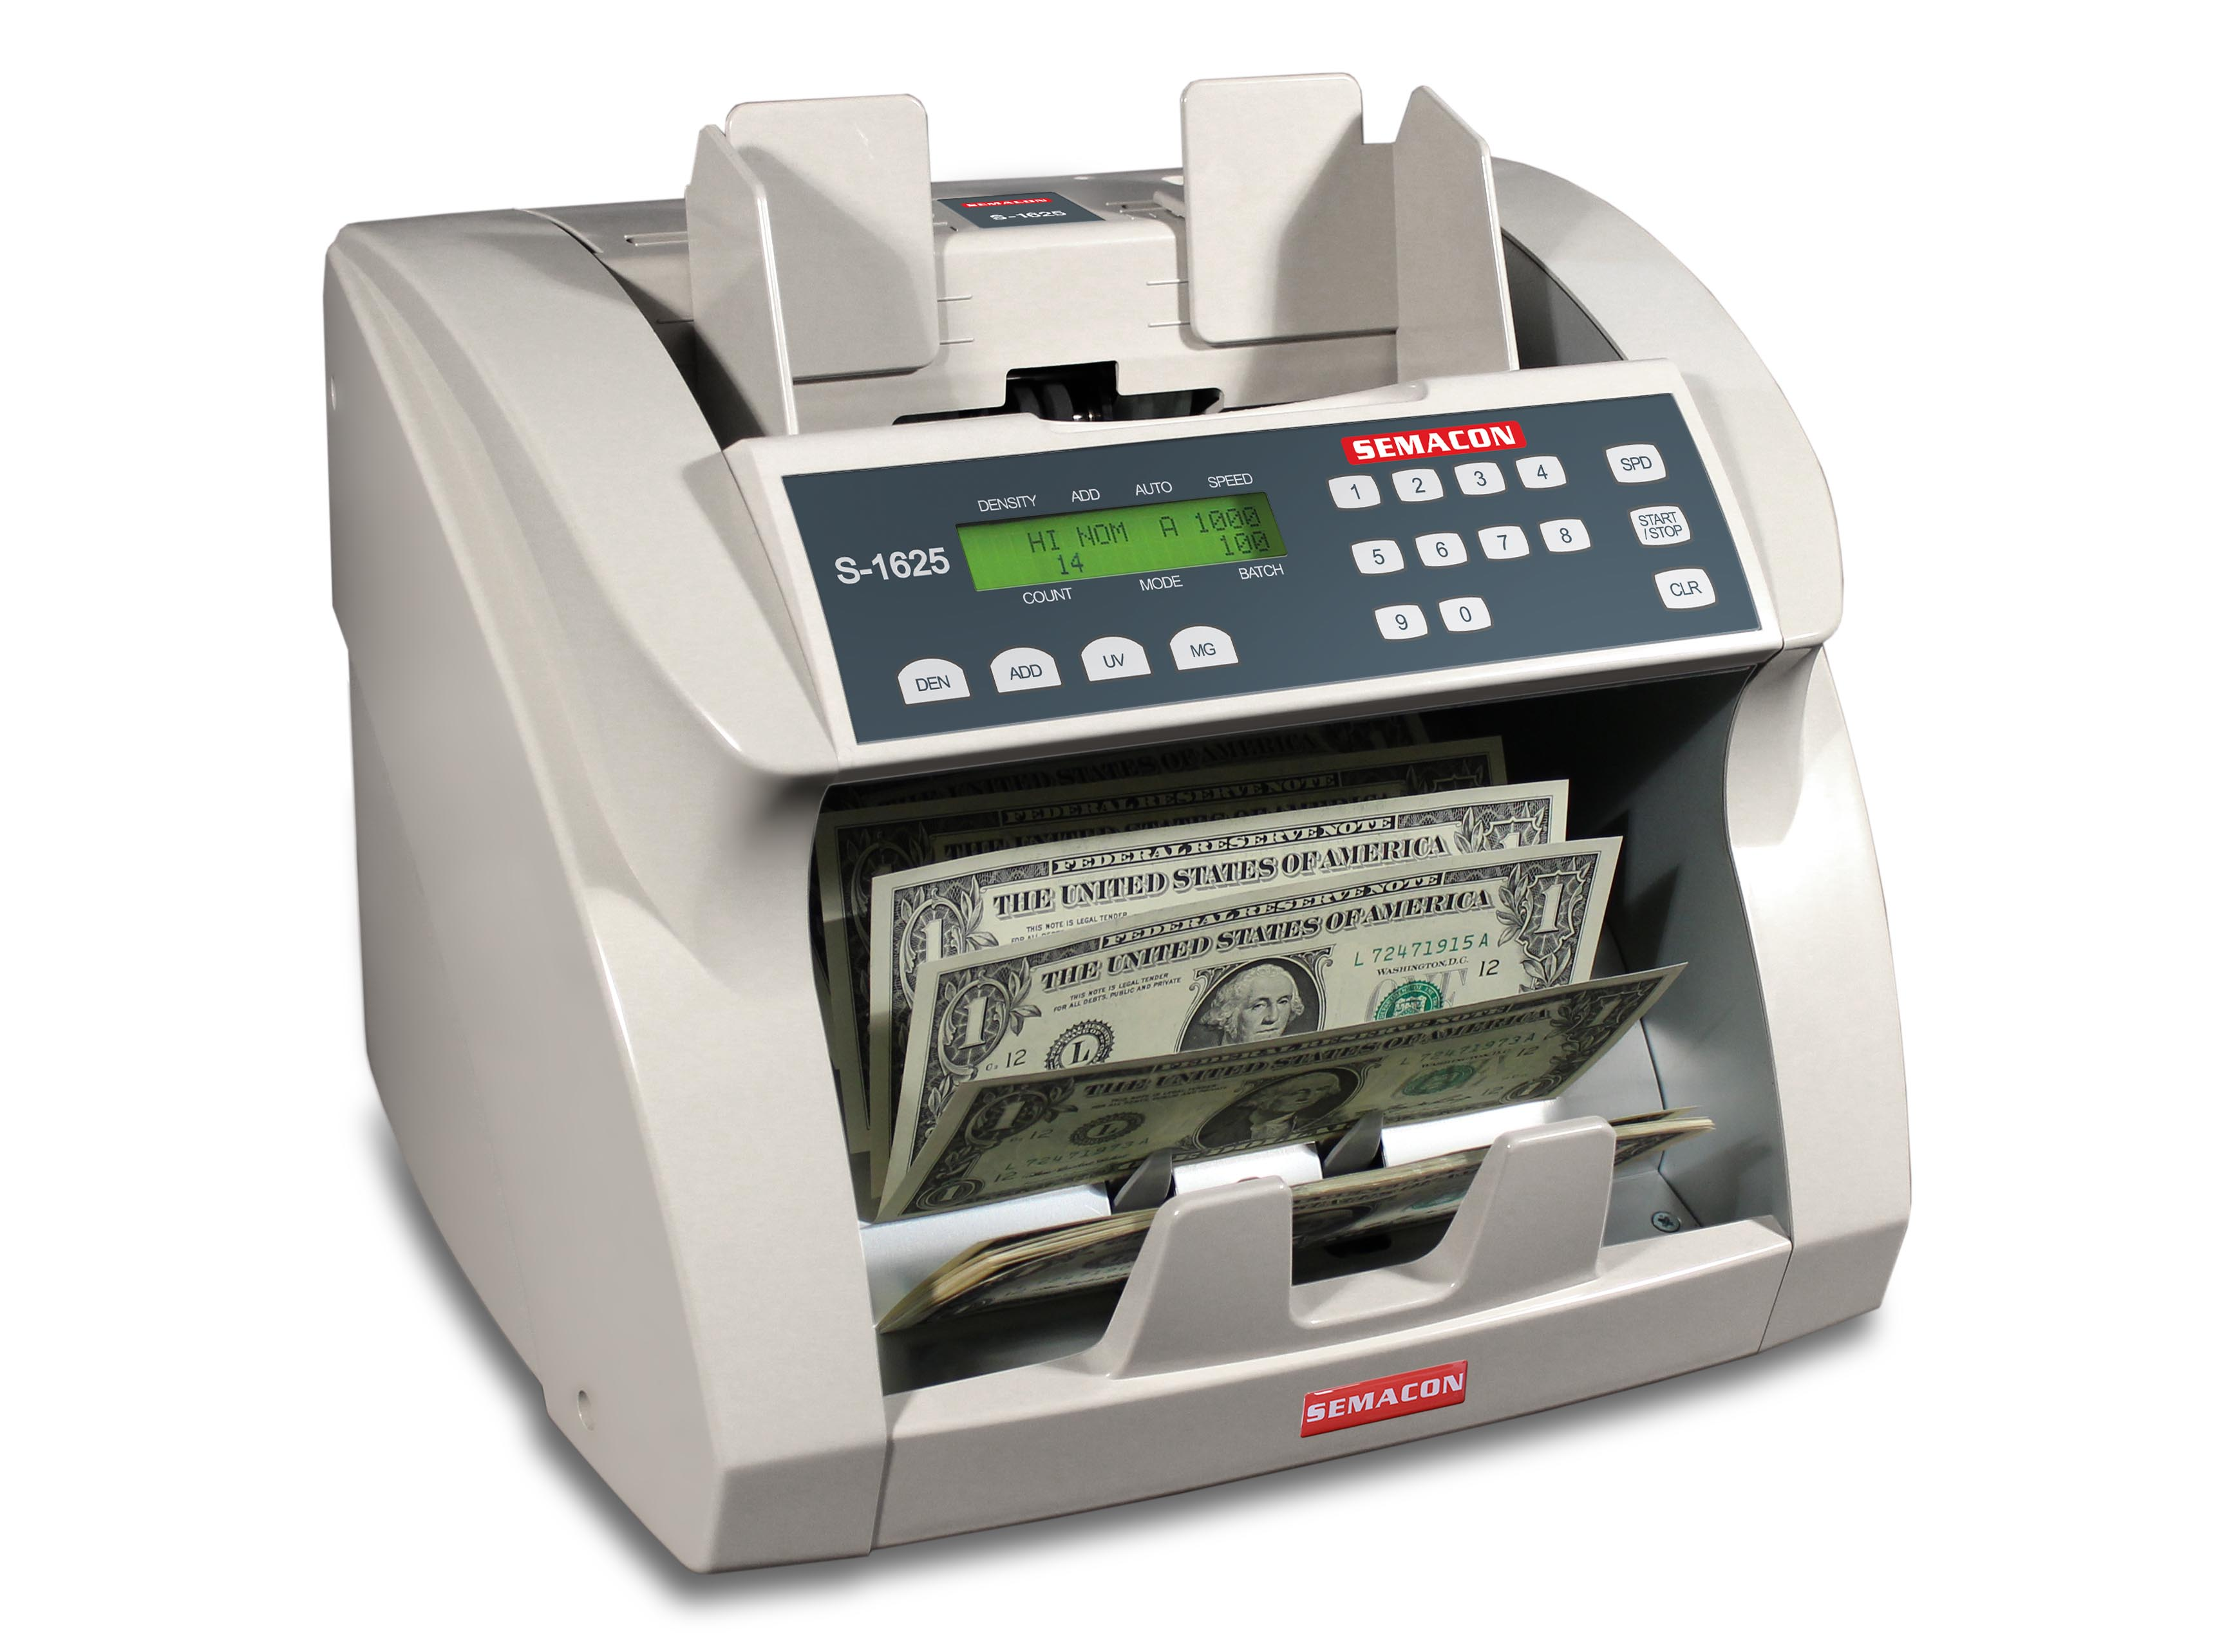 Table Top Currency Counter S-1625 (no value mode)